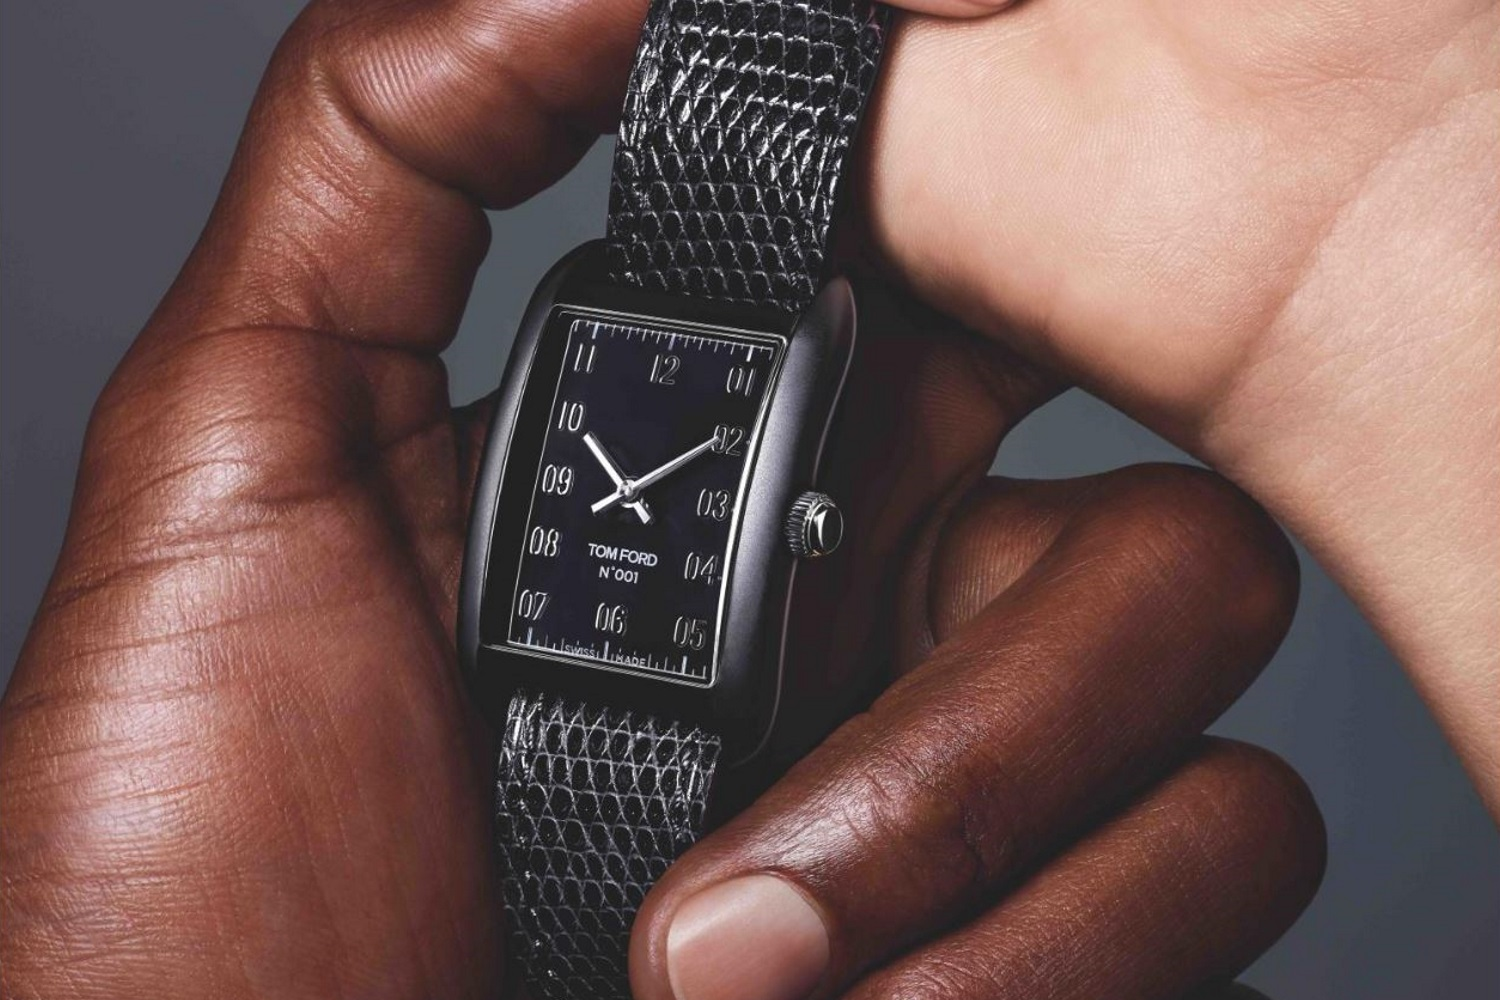 tom ford Discover the Tom Ford 001 Timepiece Collection Tom Ford 001 Watch 4